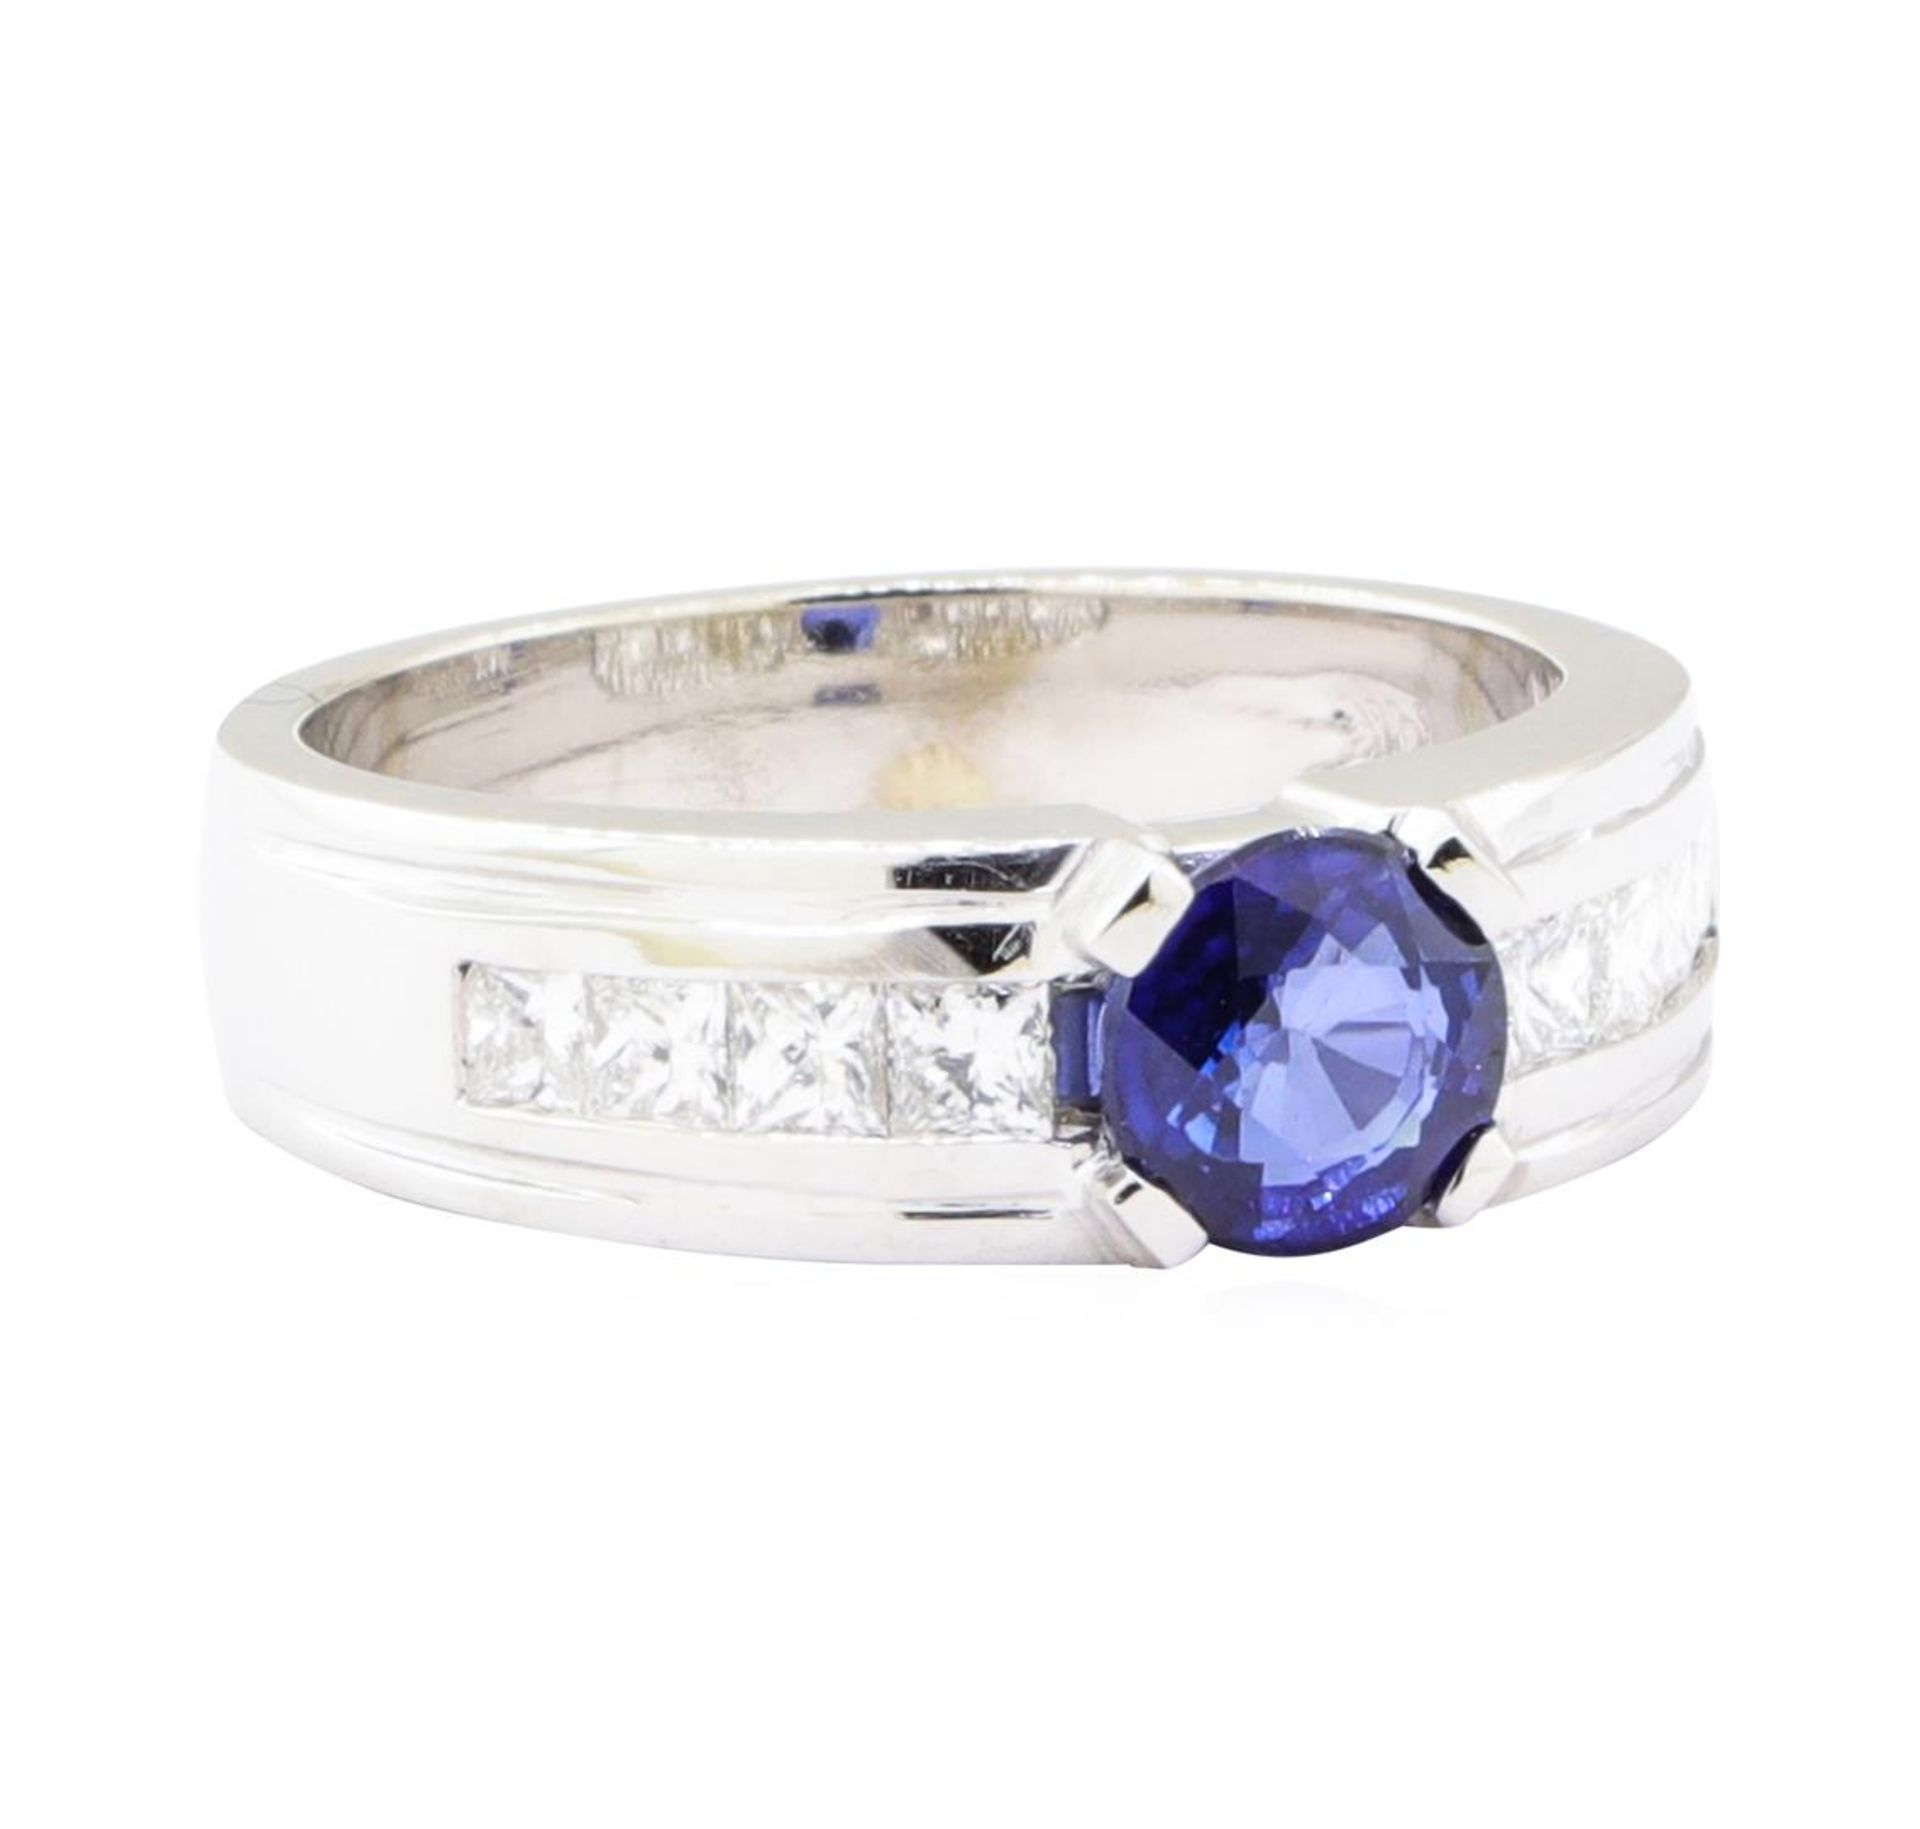 1.79ctw Sapphire and Diamond Ring - 14KT White Gold